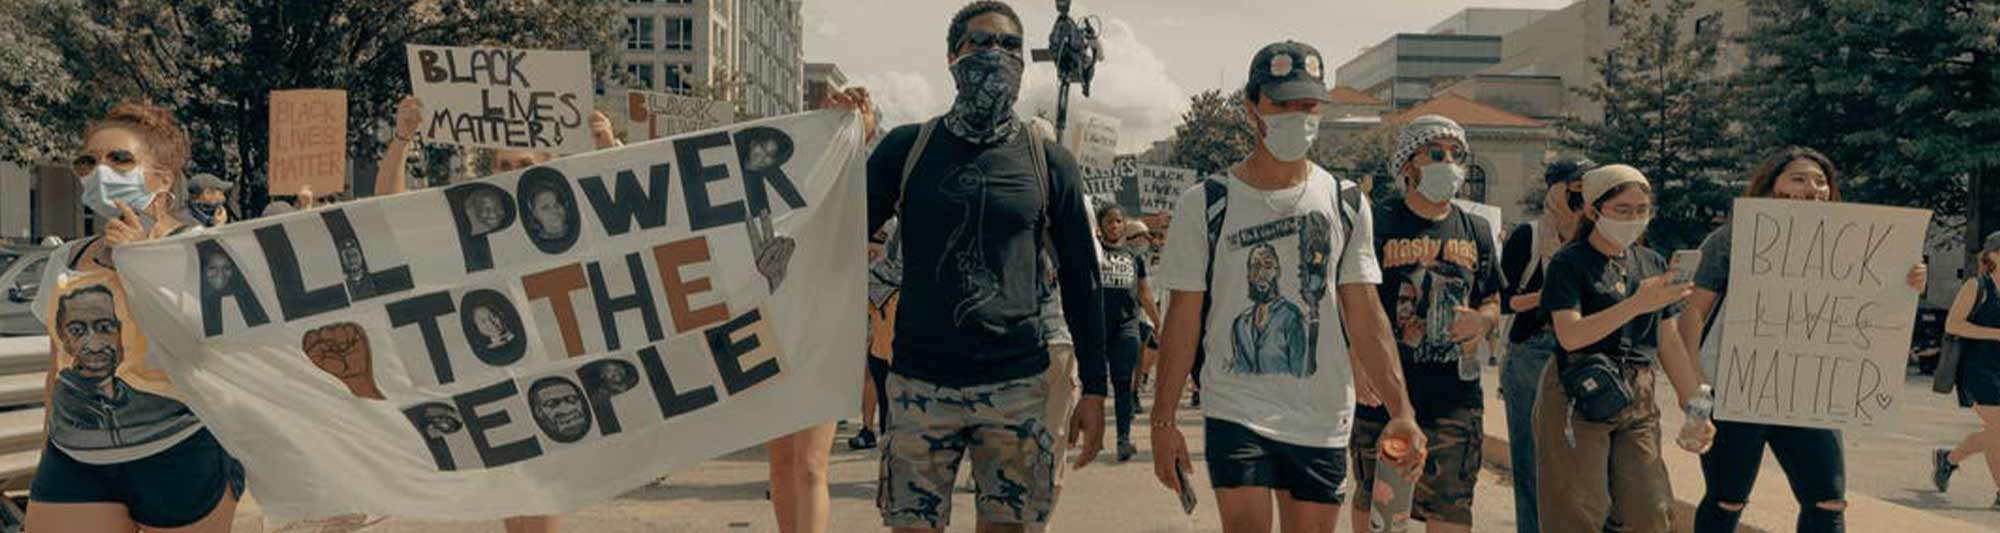 """People wearing masks, marching in peace, holding signs that say """"All the Power to the People"""" and """"Black Lives Matter"""""""